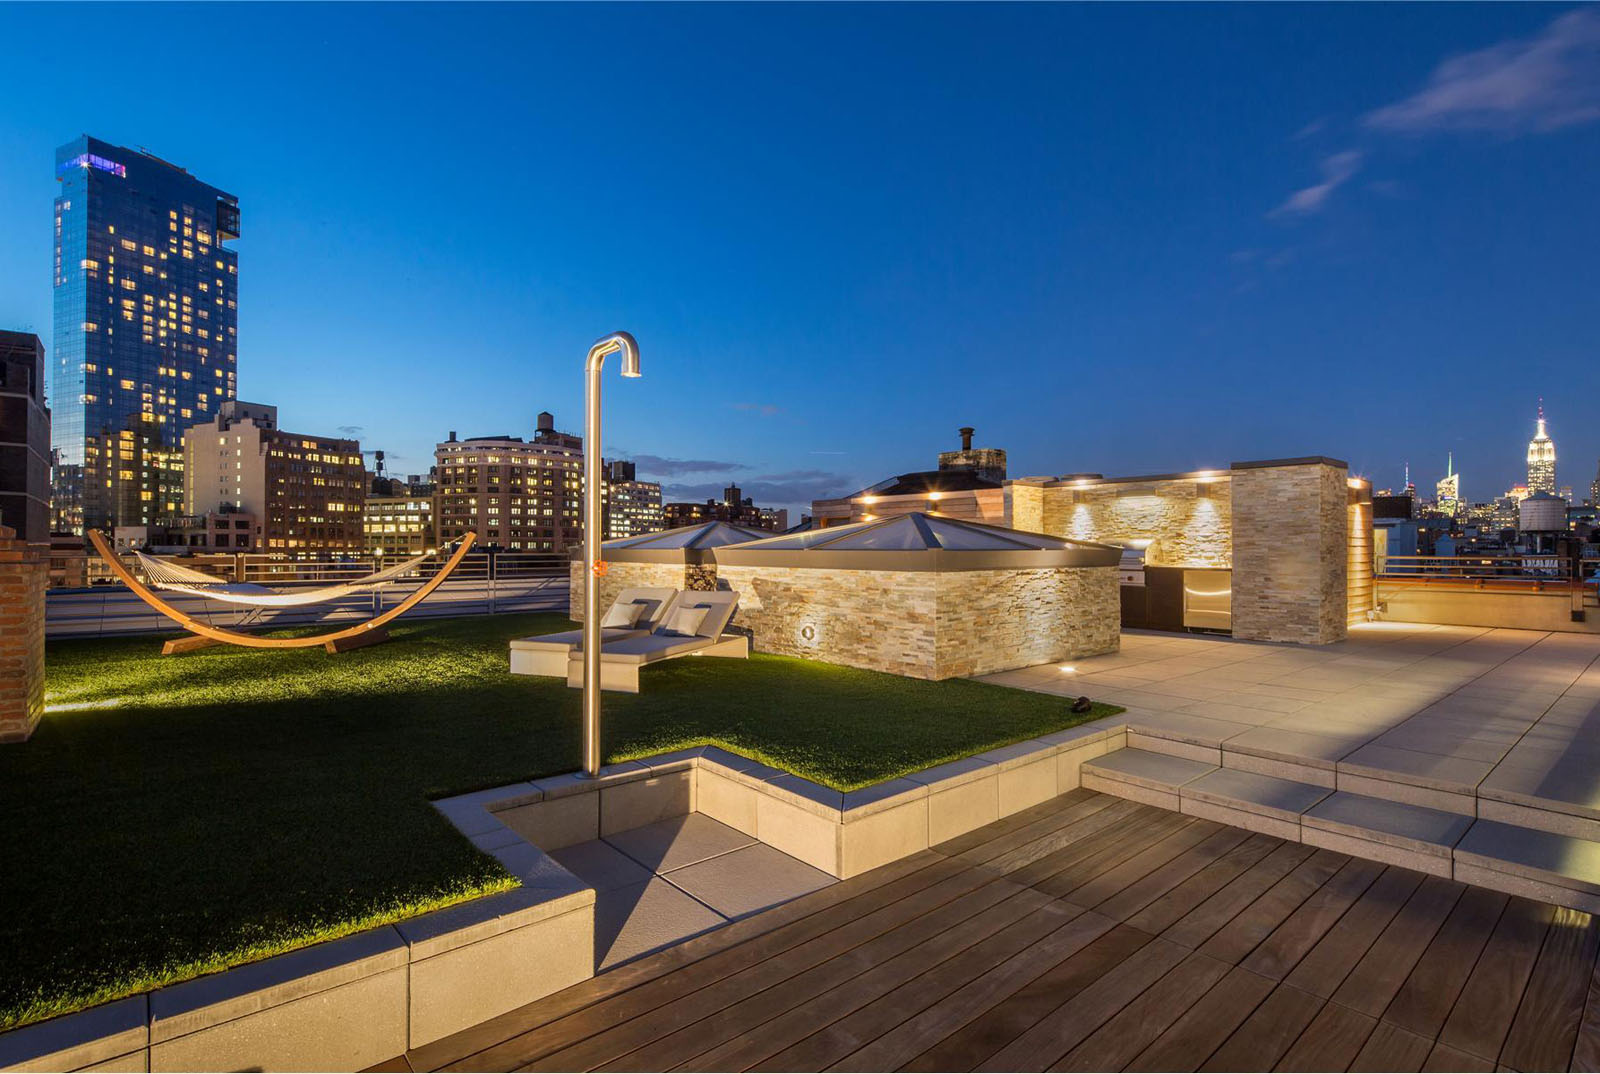 New York City Rooftop Terrace